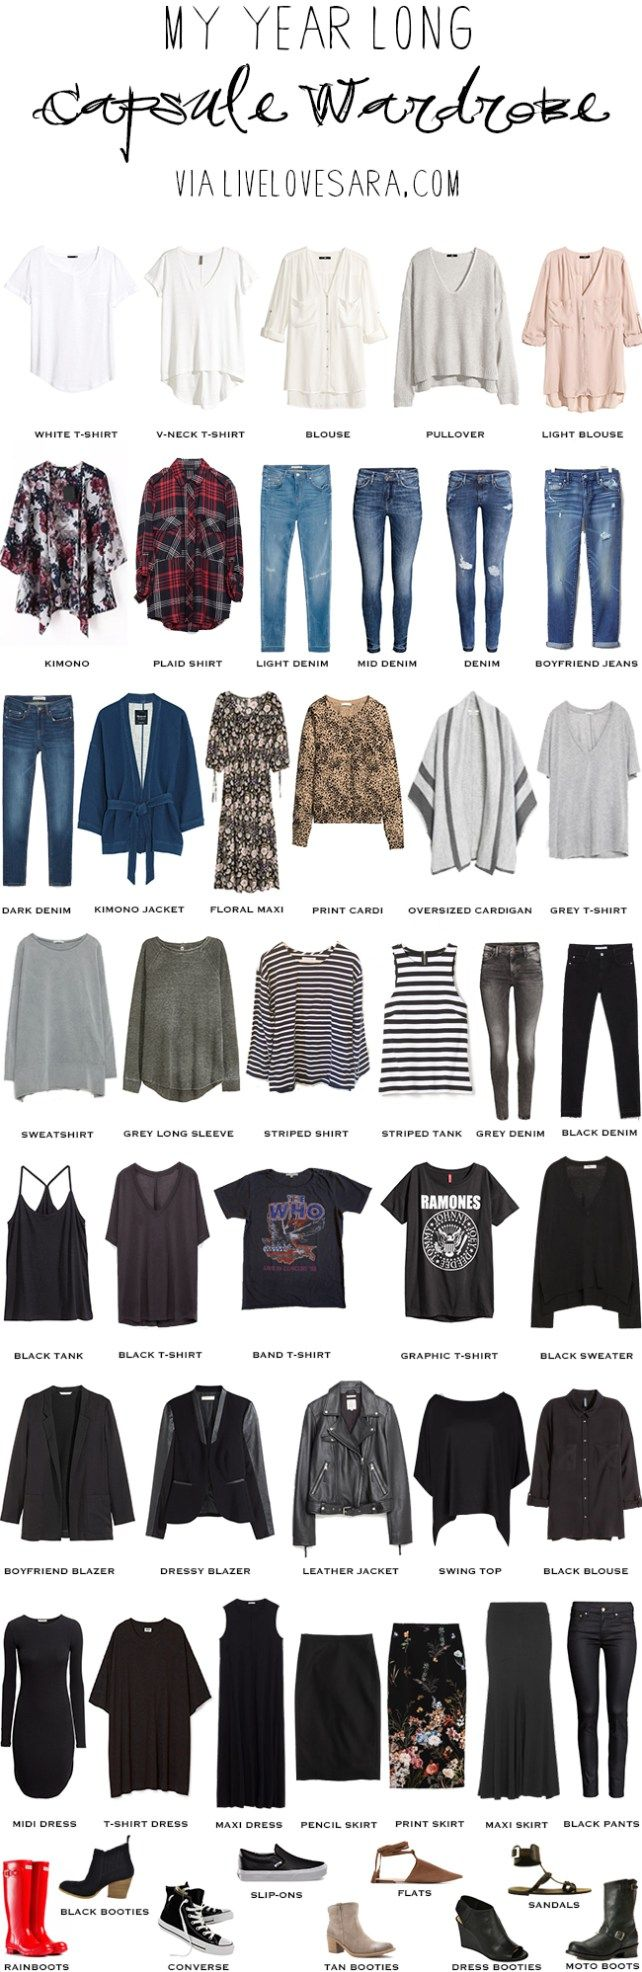 The idea behind this packing light, packing list was casual comfort. New Zealand is known to be a very laid back and casual country so a lot dressy clothes aren't needed. Although I did include one dress that can be dressed up or down if necessary.